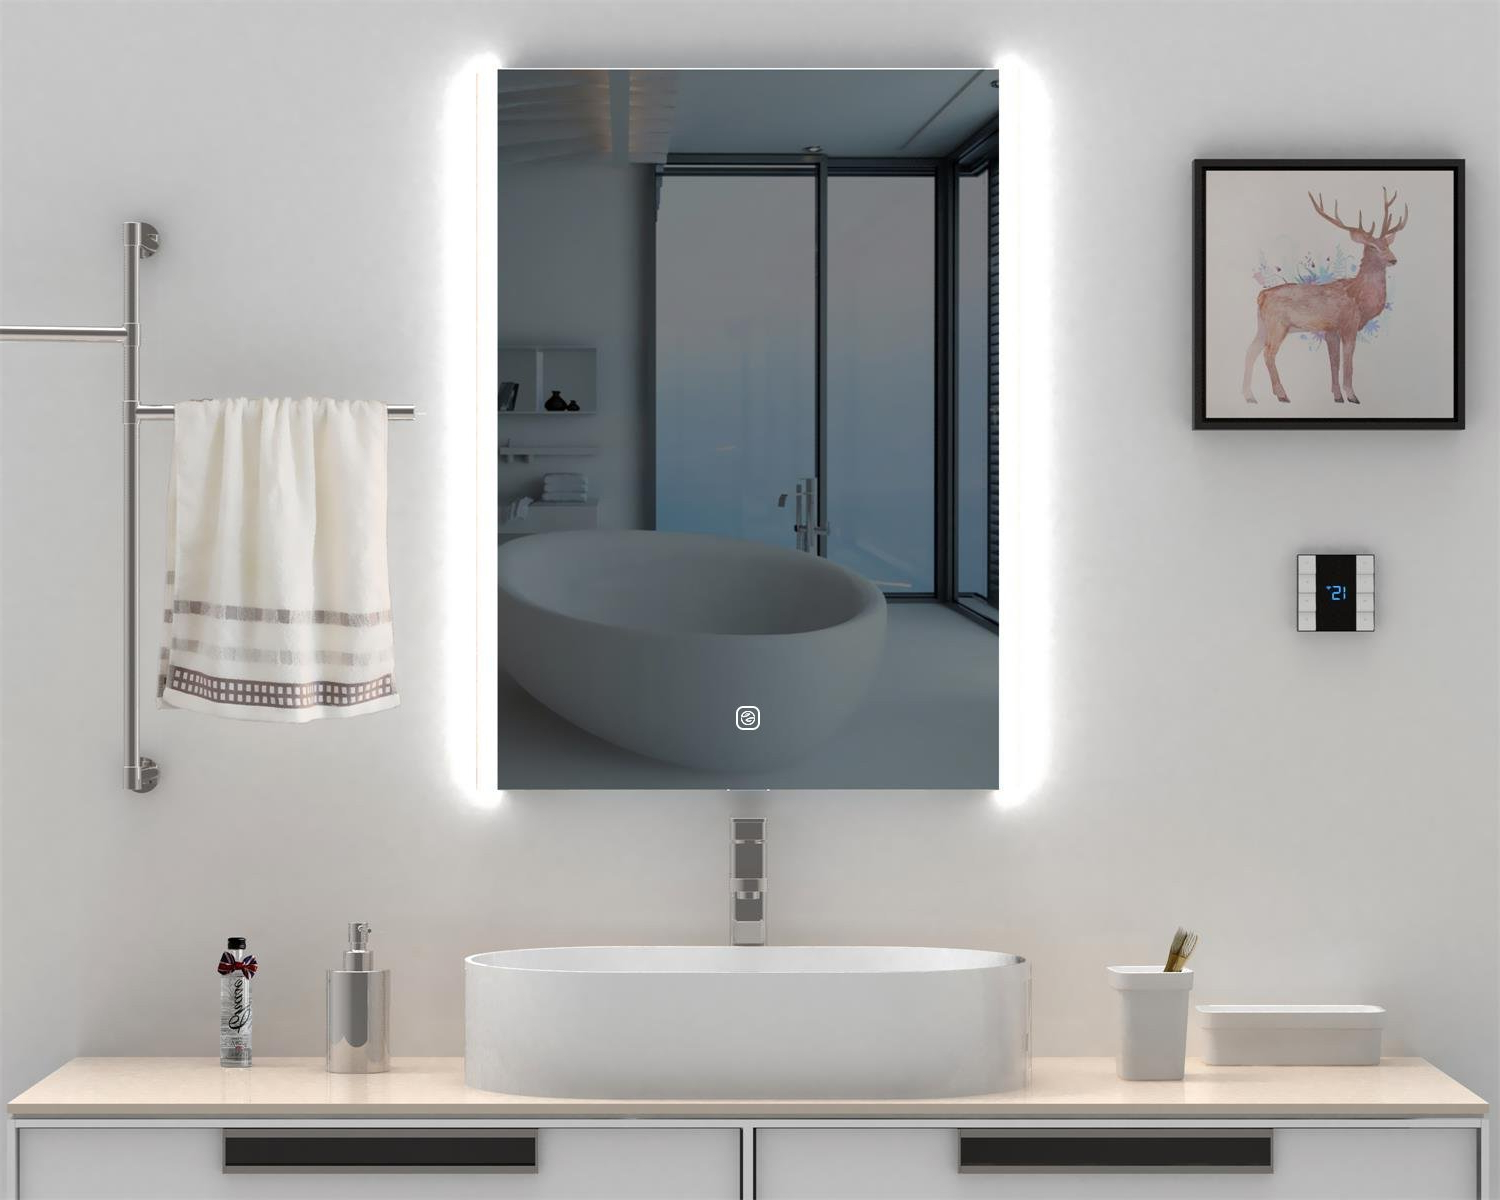 "Lighted Vanity Wall Mirrors Within Popular Heynemo 32""x24"" Bathroom Led Lighted Vanity Mirror Wall Mounted Makeup Mirror, Led Lights Vanity Dimmer Touch Switch Waterproof Illuminated Mirror For (View 13 of 20)"